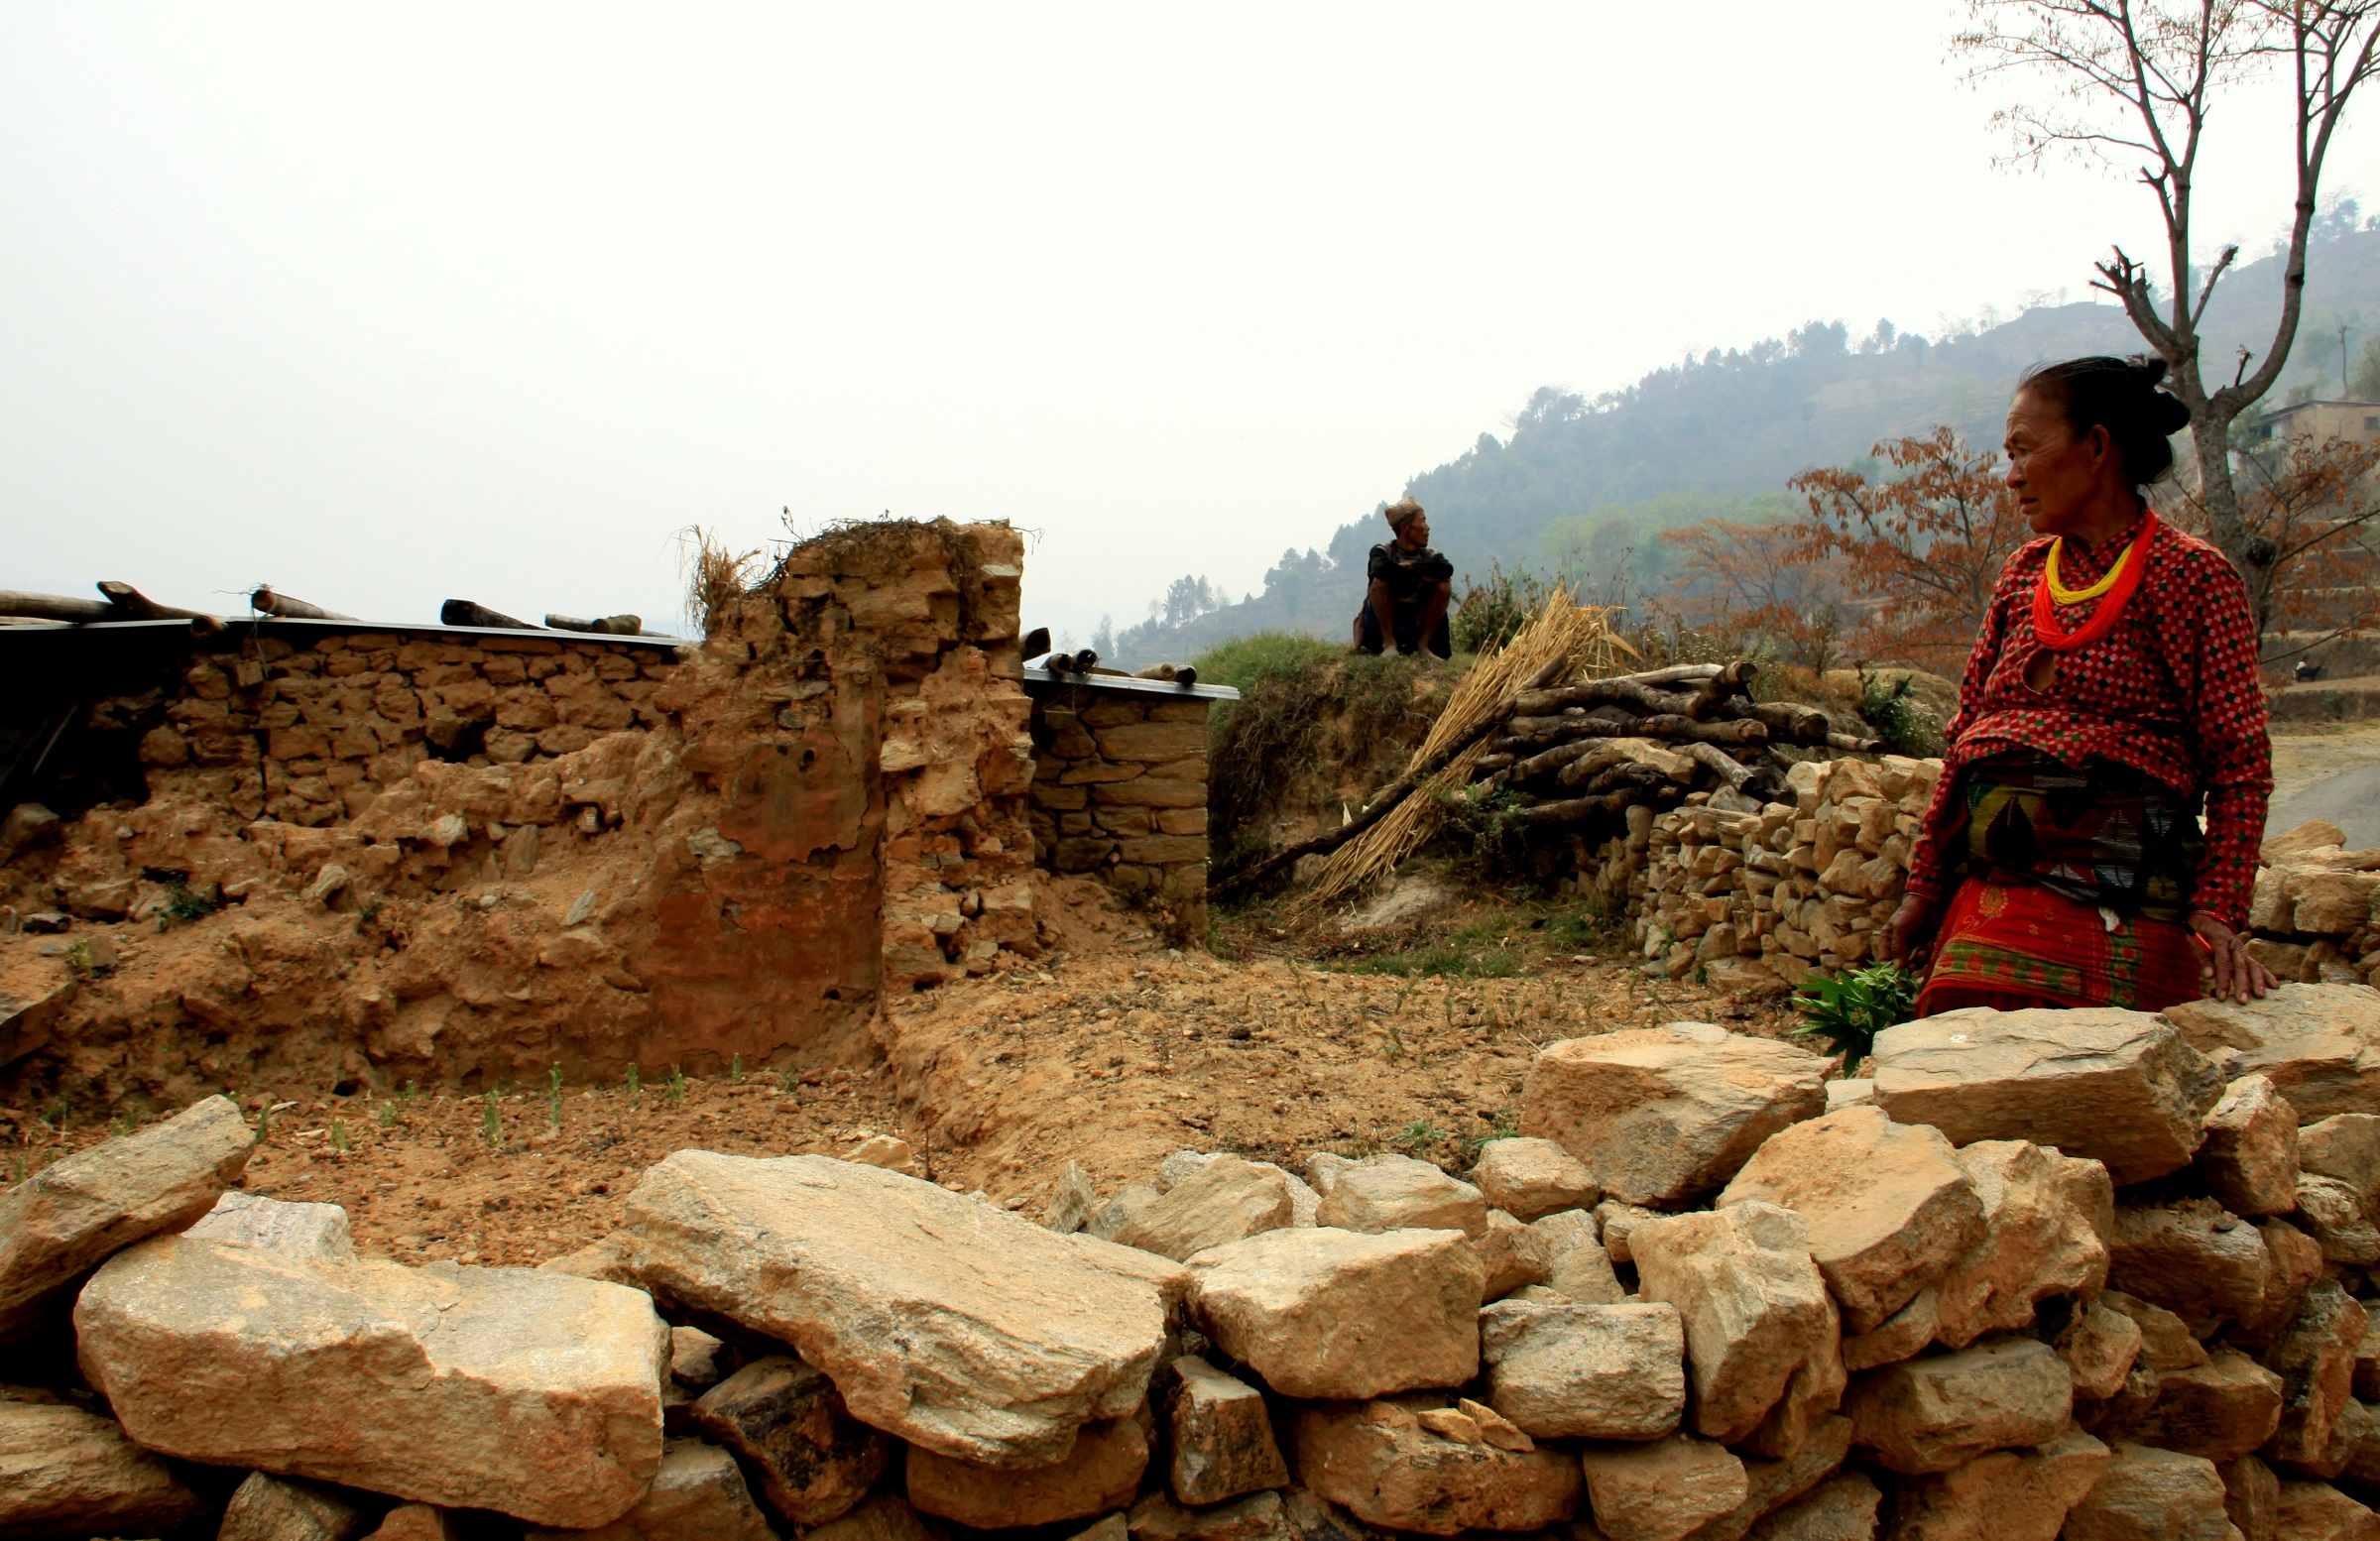 An elderly couple at the site of their house in Nanglebari, Nepal, that was destroyed by the 2015 earthquake. © 2016 Leesha Manju, Courtesy of Photoshare